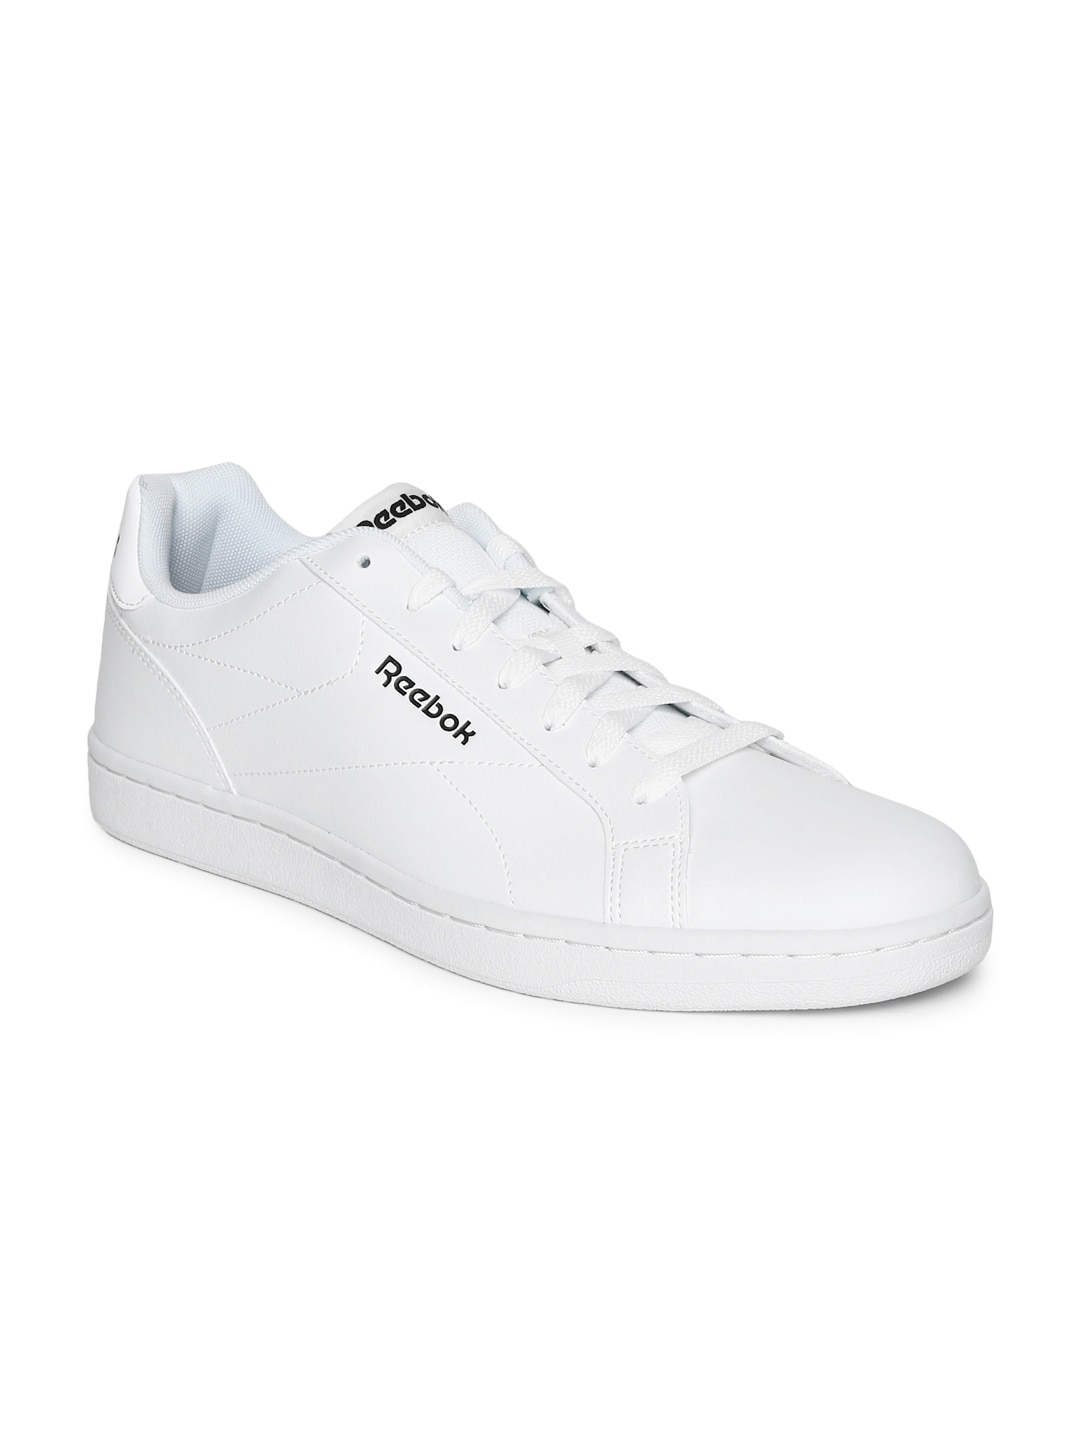 398214813f8 Reebok Tops Casual Shoes - Buy Reebok Tops Casual Shoes online in India